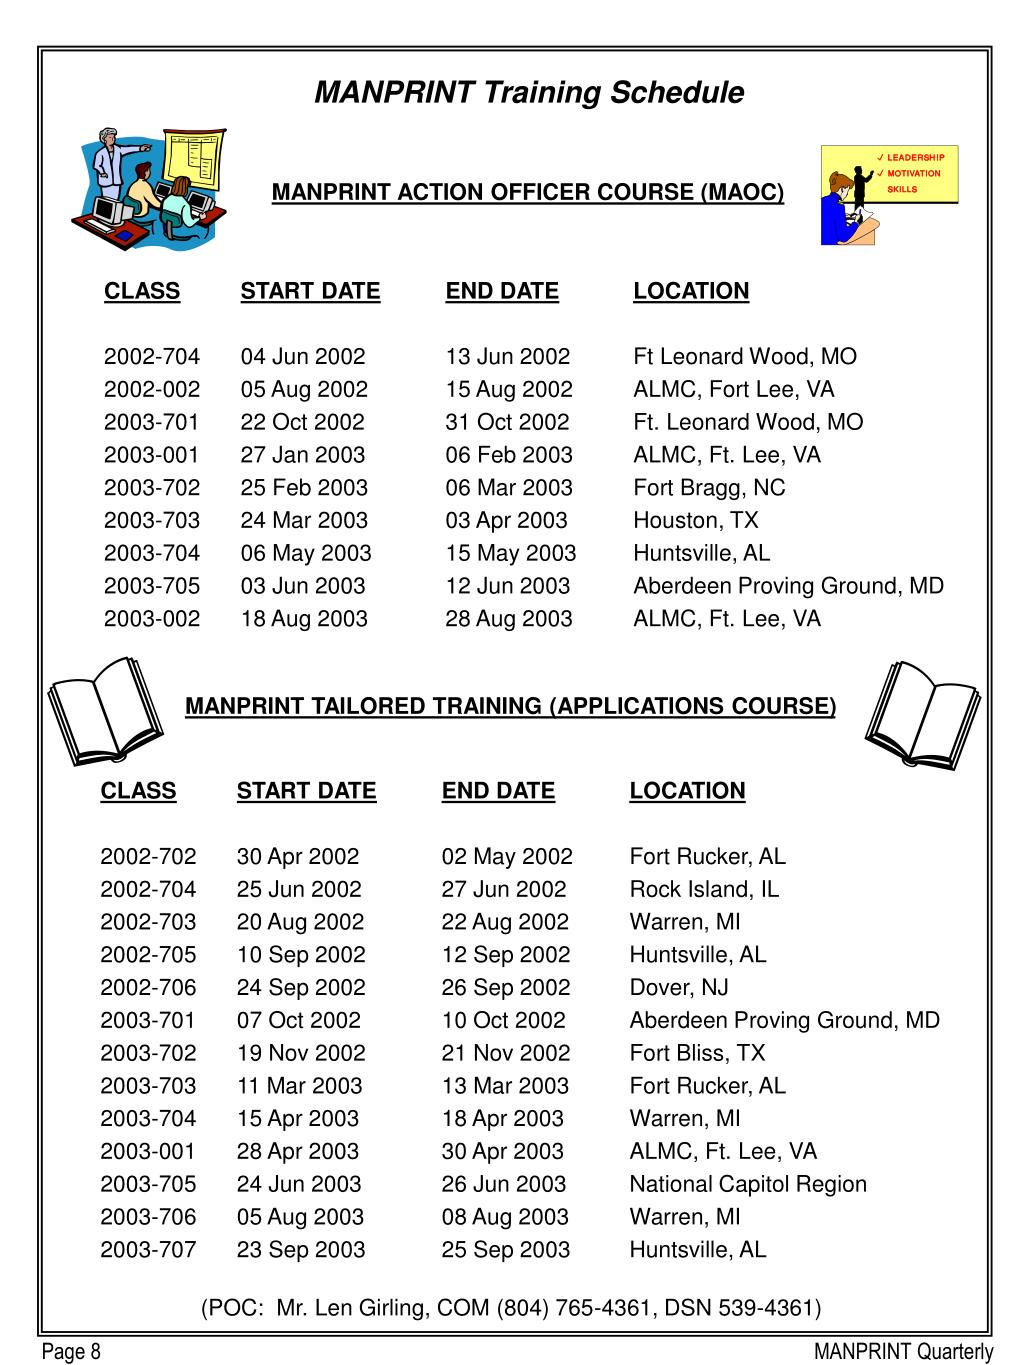 MANPRINT Training Schedule